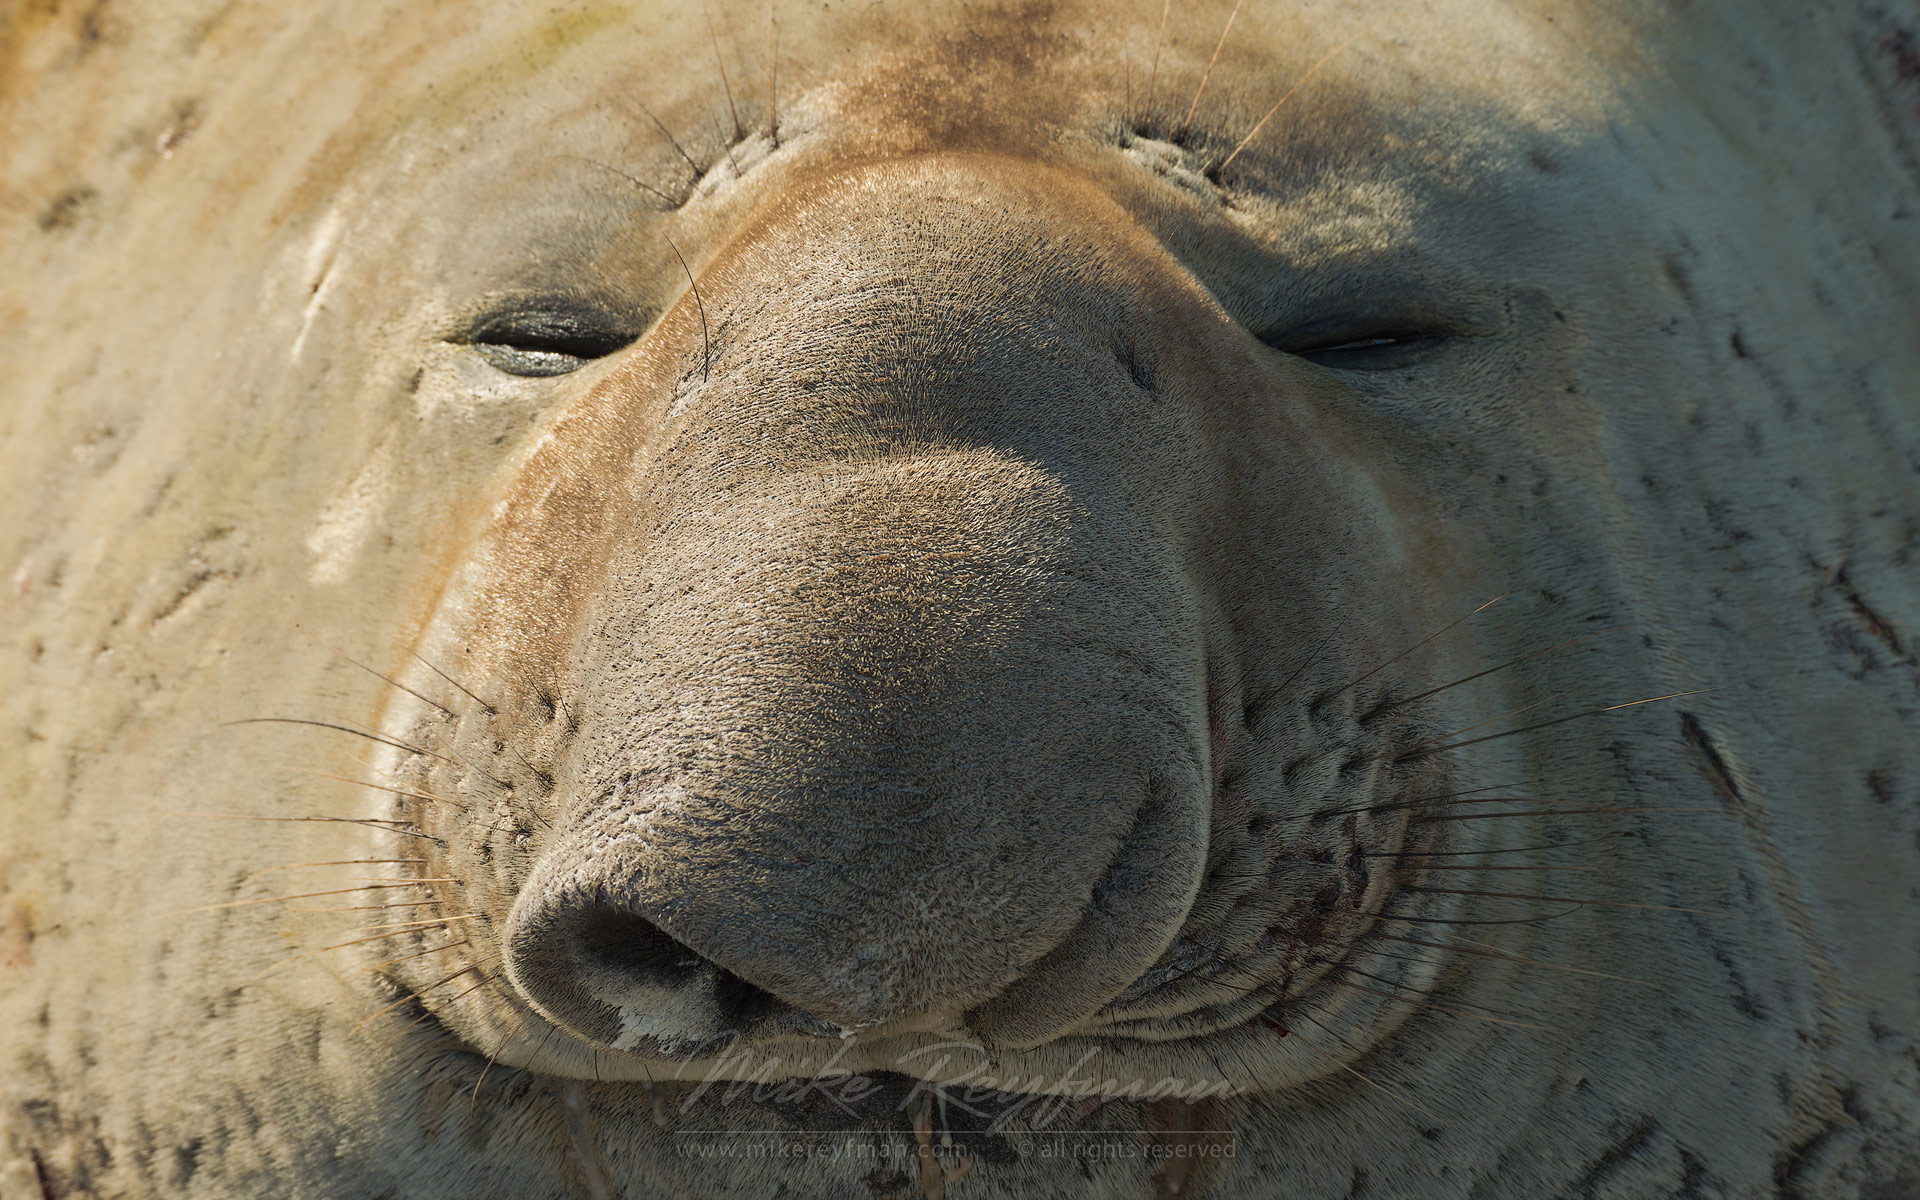 Portrait of Happy Southern Elephant Seal (Mirounga leonina). South Georgia, Sub-Antarctic - Southern-Elephant-Seals-Fur-Seals-South-Georgia-Sub-Antarctic - Mike Reyfman Photography